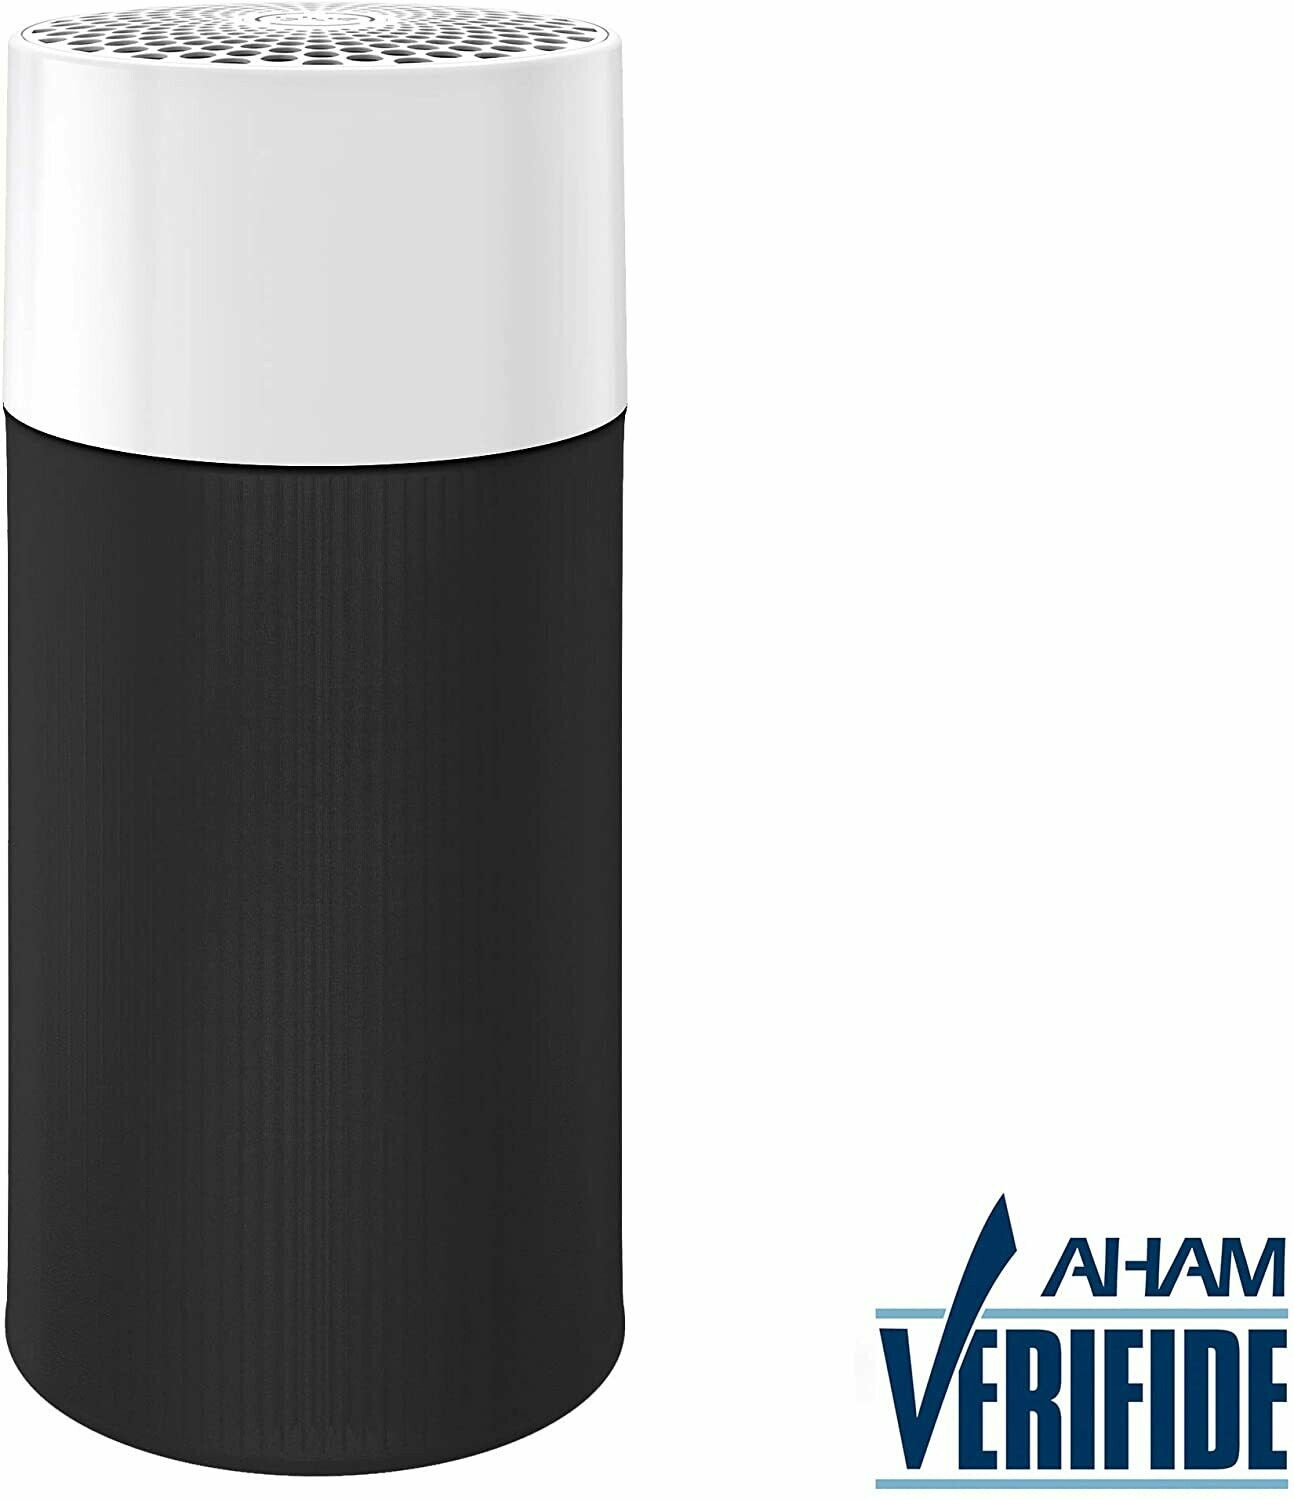 Blue Pure 411 Air Purifier 3 Stage with Two Washable Pre-Filters, Particle, Carbon Filter, Captures Allergens, Odors, Smoke, Mold, Dust, Germs, Pets, Smokers, Small Room